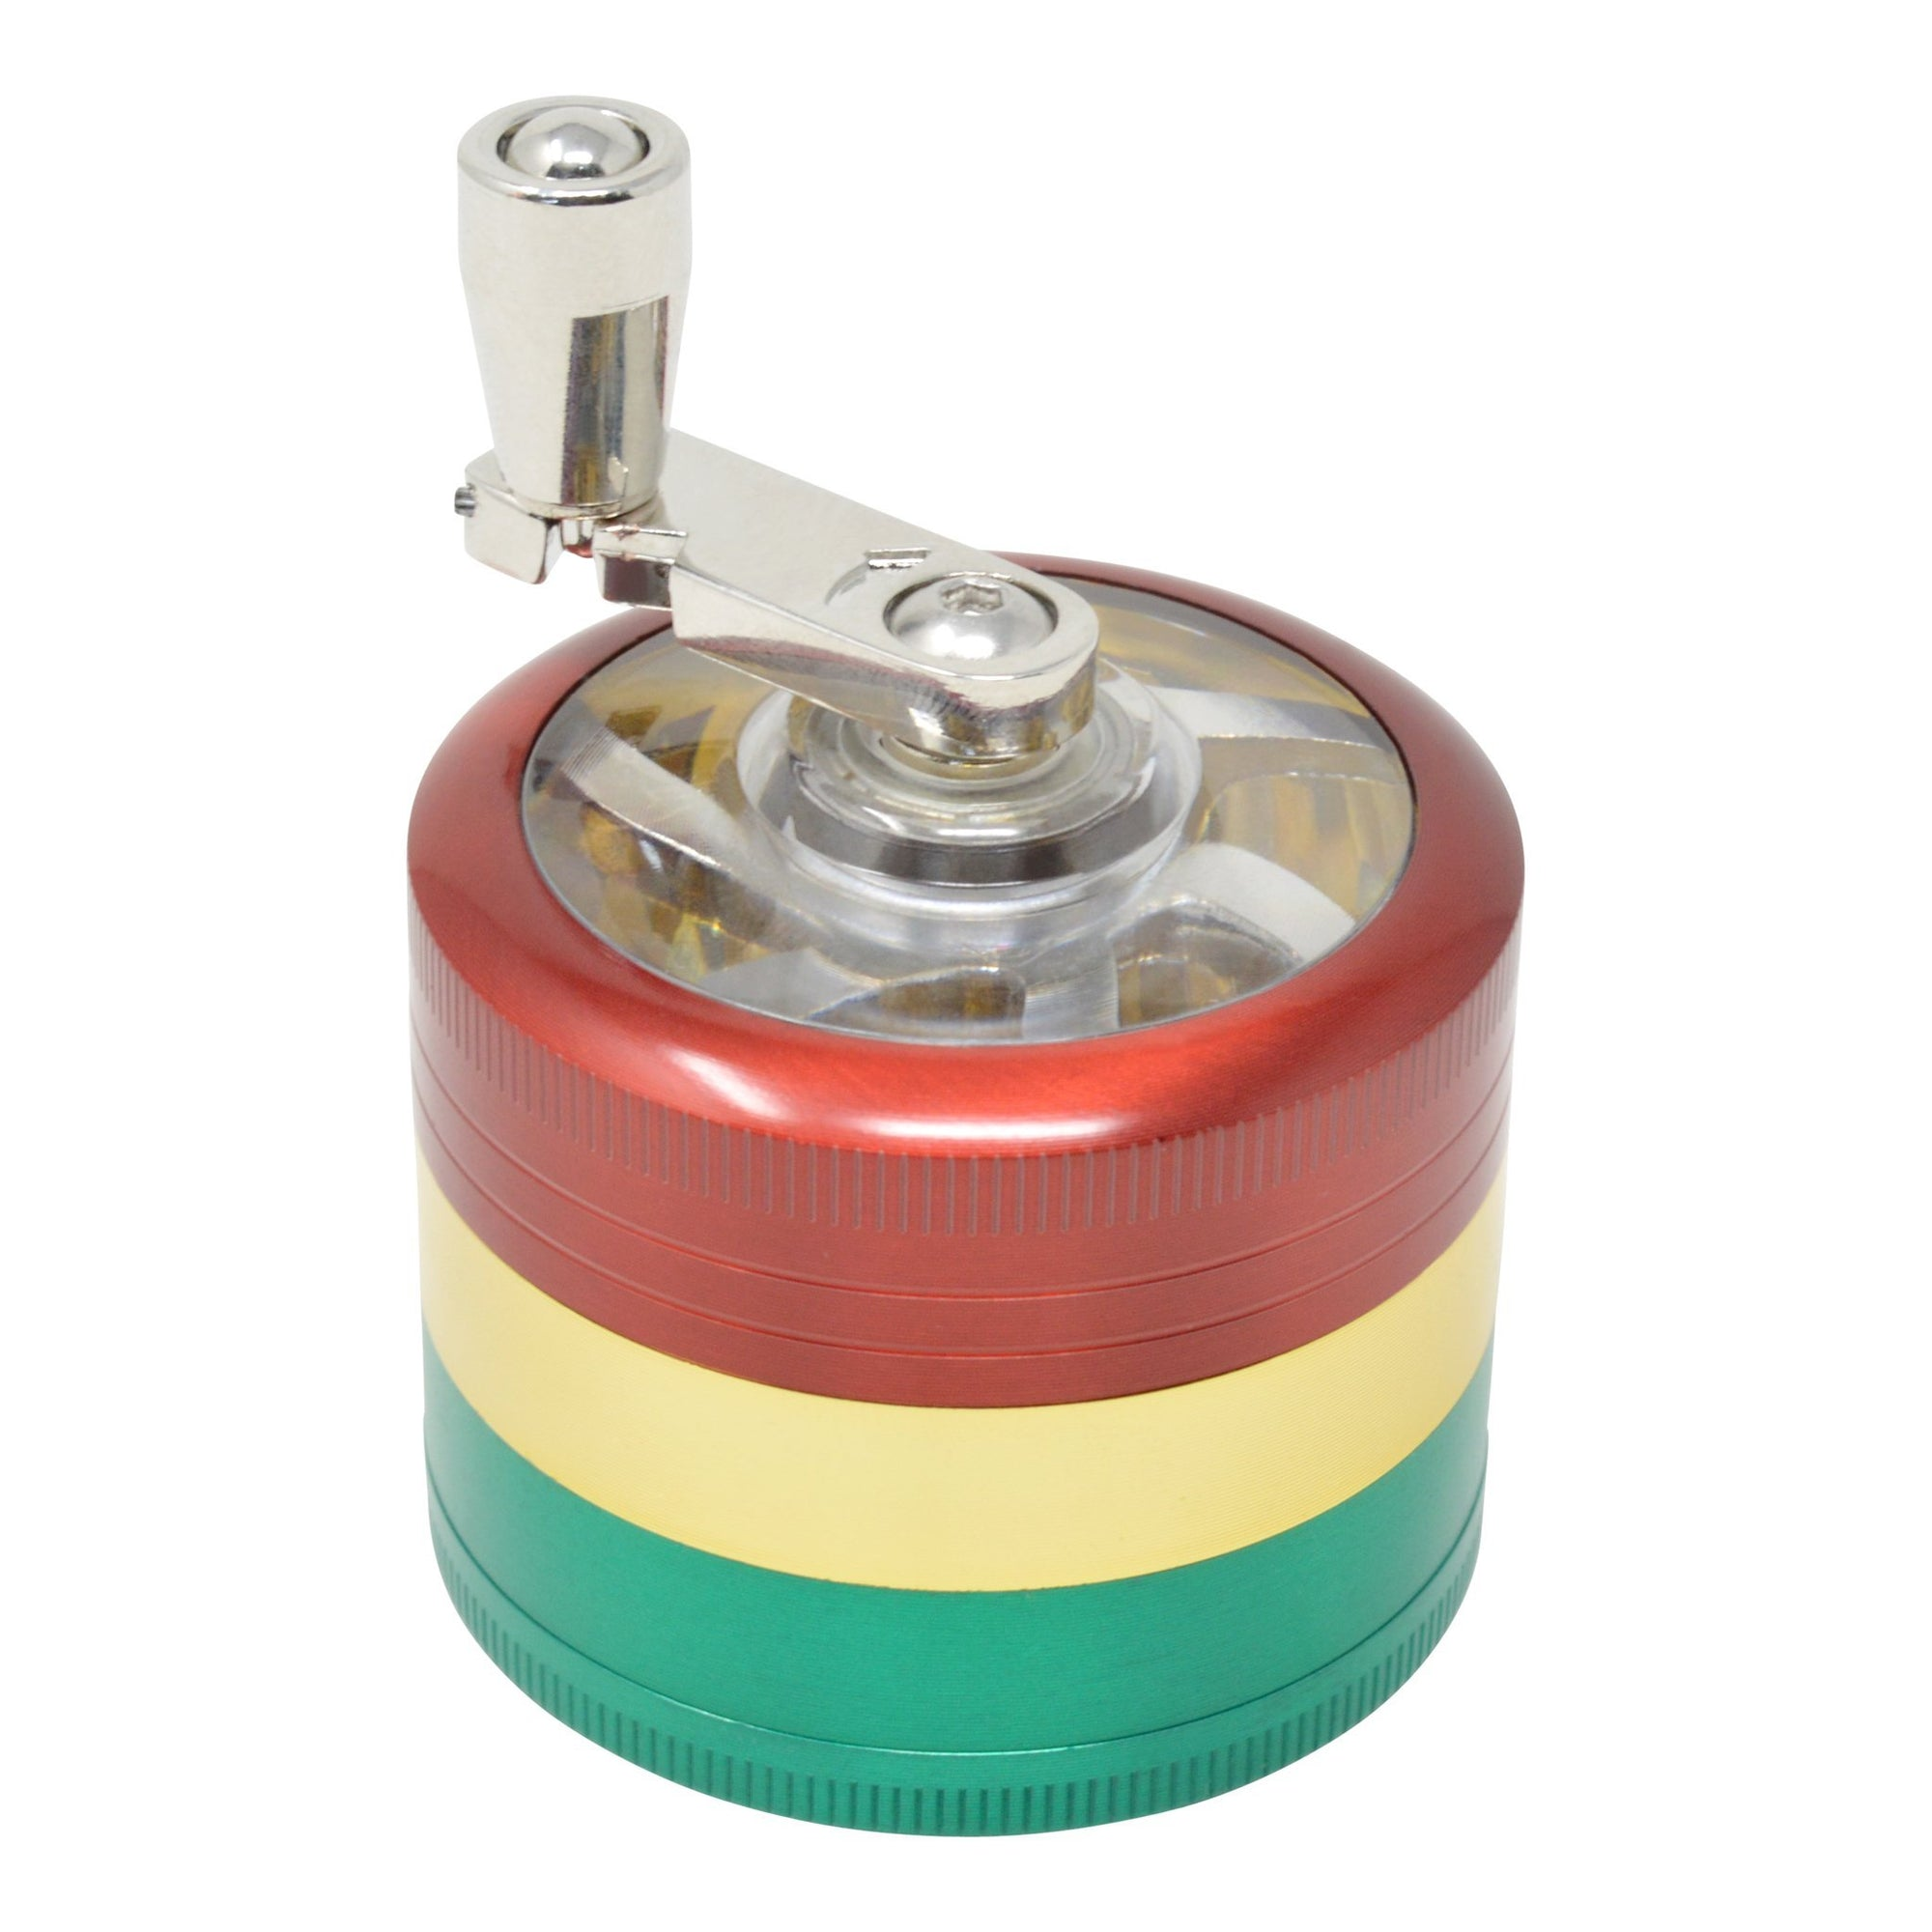 High angle shot of closed rasta dub grinder in red, yellow, green colors with hand crank on left slightly back